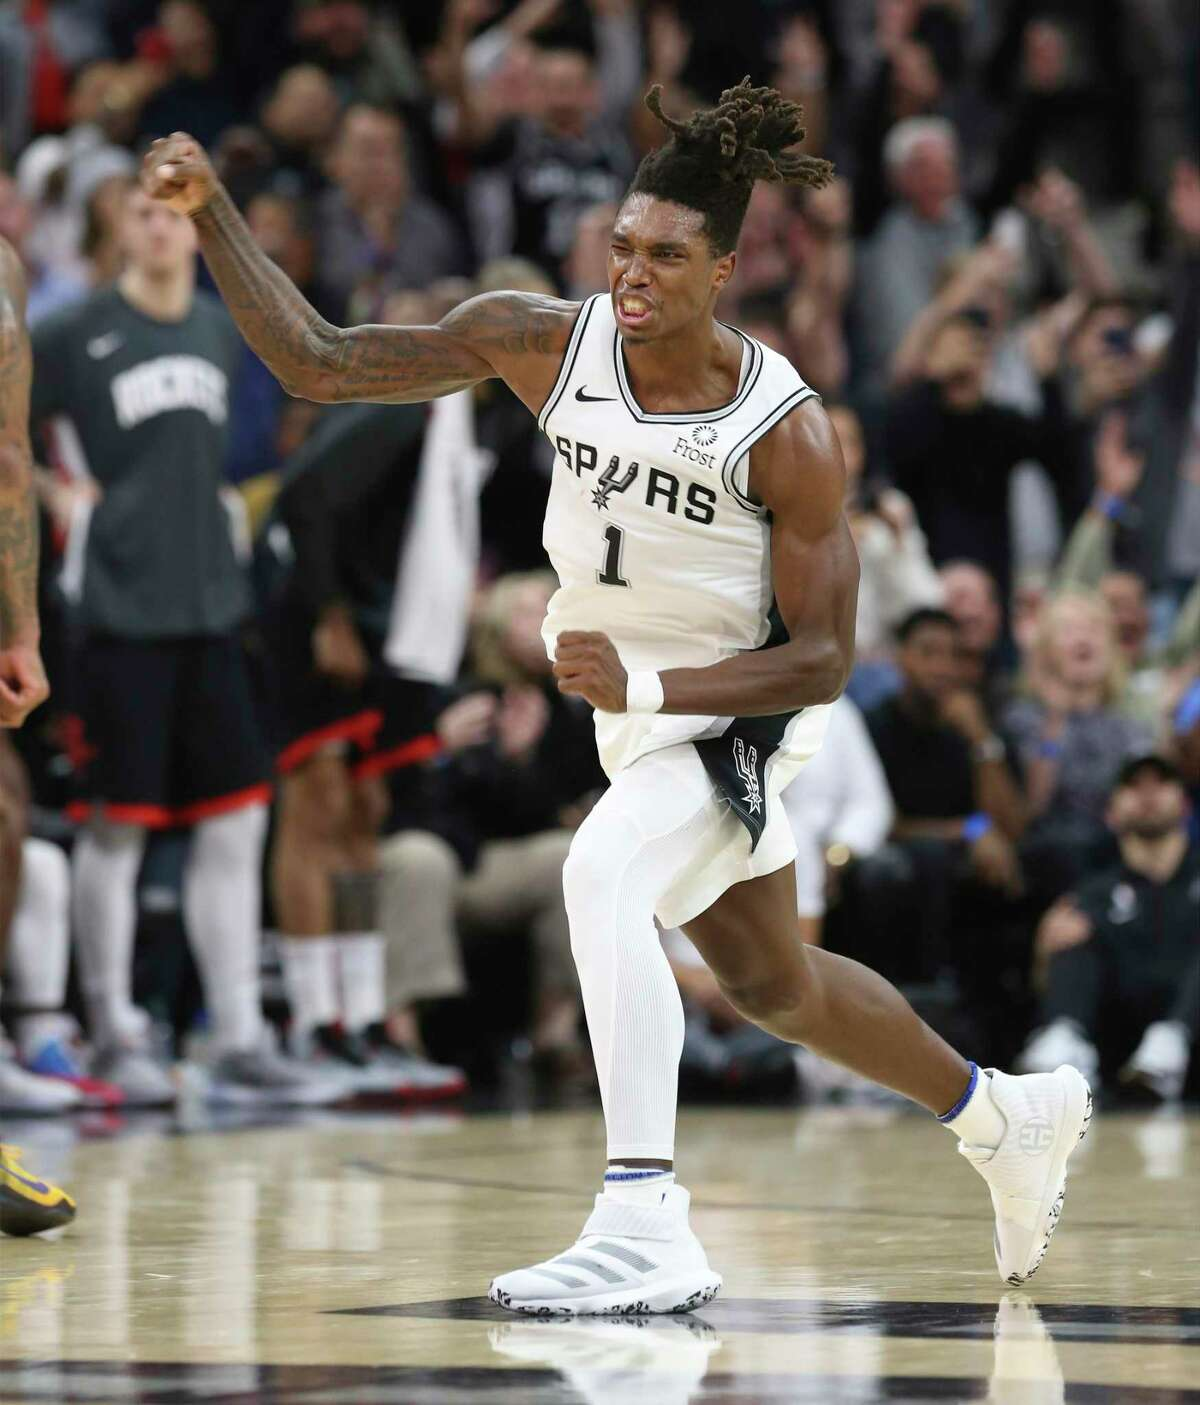 Spurs' Lonnie Walker IV (01) reacts after hitting a three against the Houston Rockets during their game at the AT&T Center on Tuesday, Dec. 3, 2019. Spurs rally from 22 points to defeat the Rockets, 135-133, in double overtime.